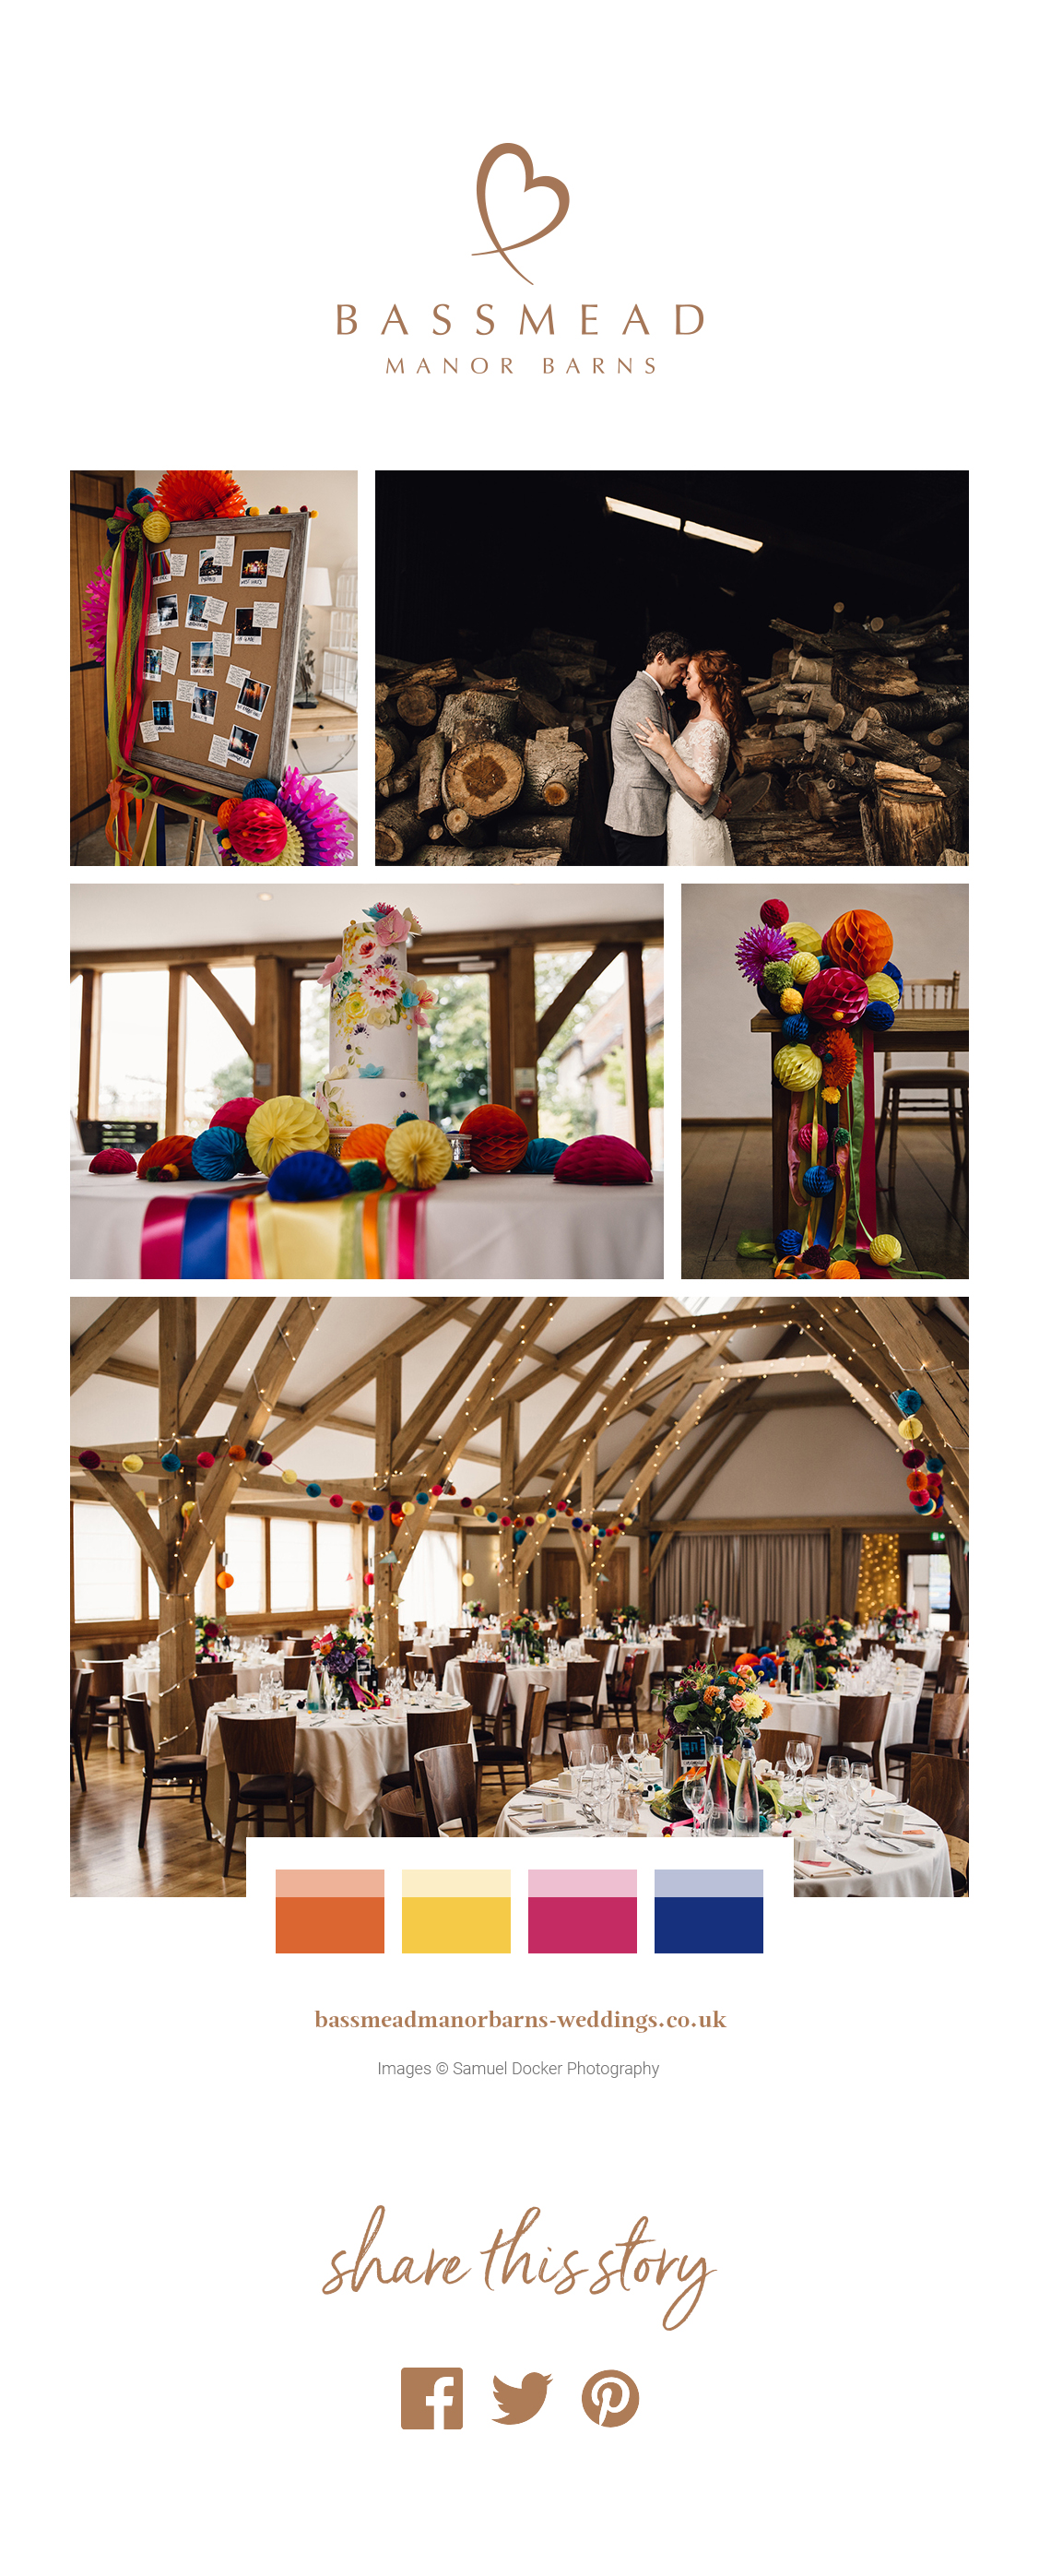 Katie and hris' real life wedding at Bassmead Manor Barns